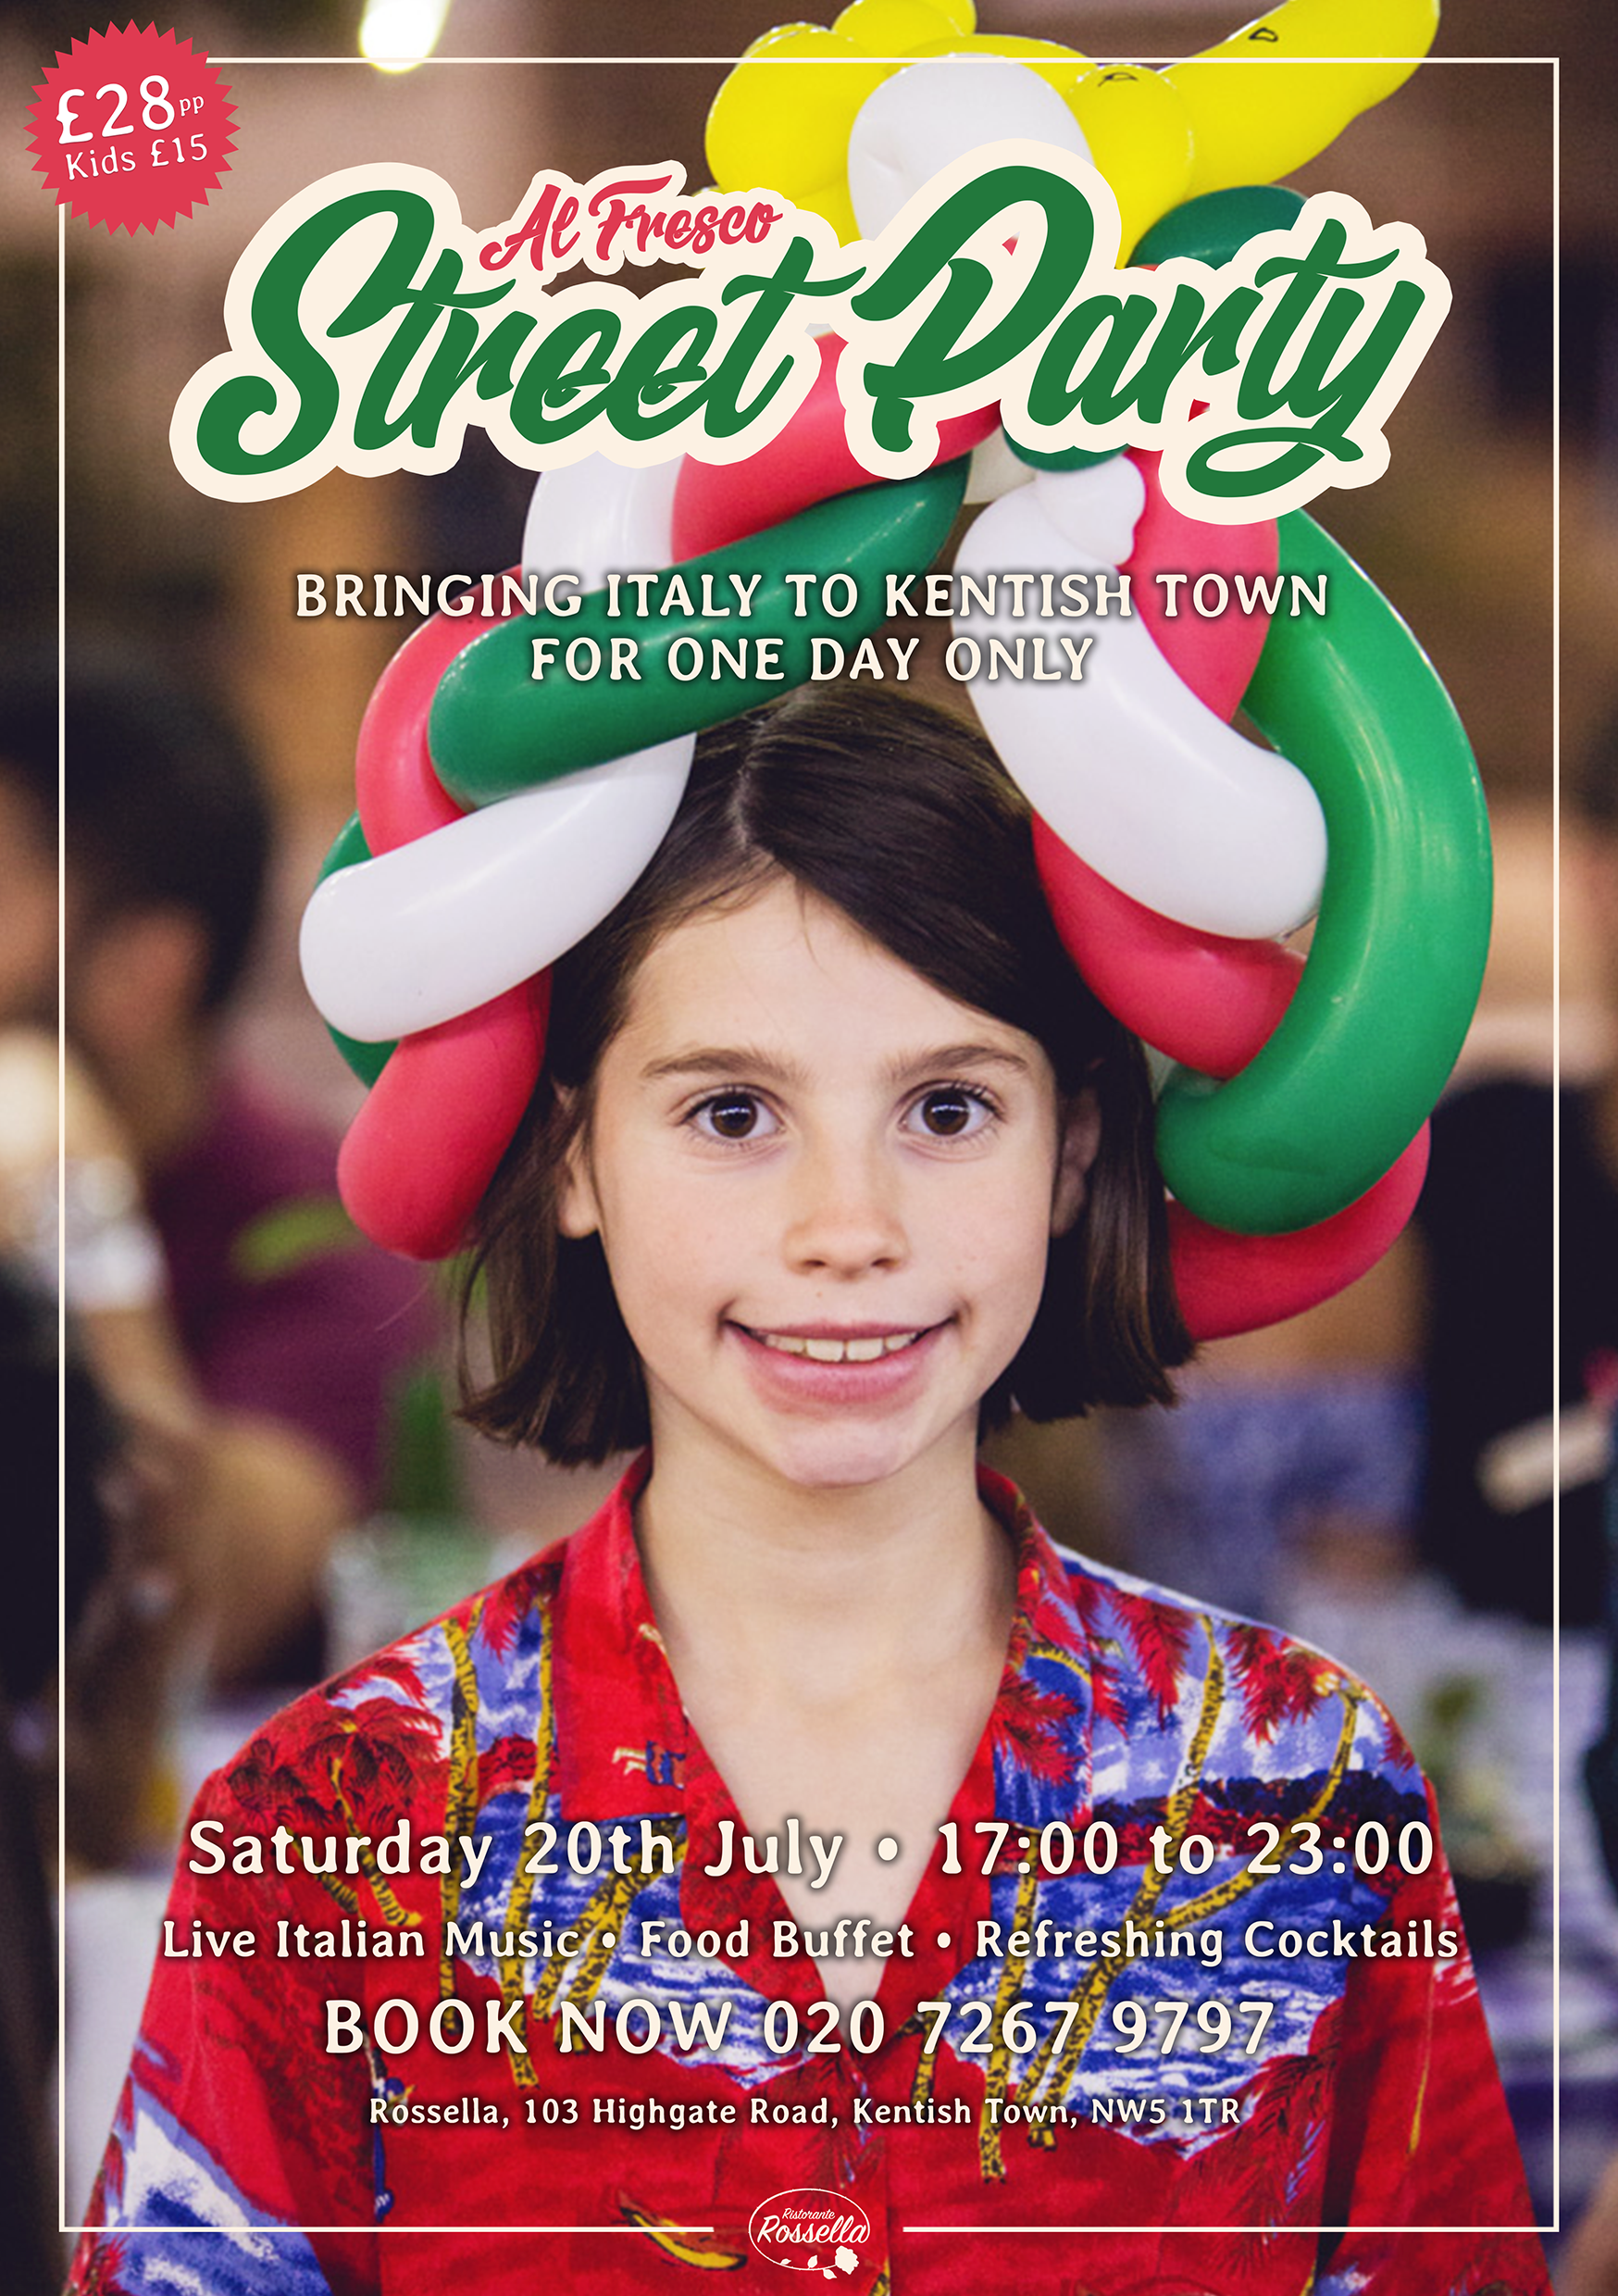 THE AL FRESCO STREET PARTY IS BACK! - On Saturday the 20th July Italy will be spilling out onto the streets of Kentish Town and you're all invited! Come join us for a night of refreshing cocktails, dance to the sounds of live authentic Italian music, and enjoy a delicious buffet of Italian classics. If that wasn't enough, a balloon artist will be joining us to keep the kids (and us adults!) entertained while the sun drops behind the Kentish Town skyline.So come and enjoy all the elements of Italian summer evenings with great company, food and wine. We look forward to seeing you there!Book your table now at contact@rossella.co.uk or call 0207 267 9797.